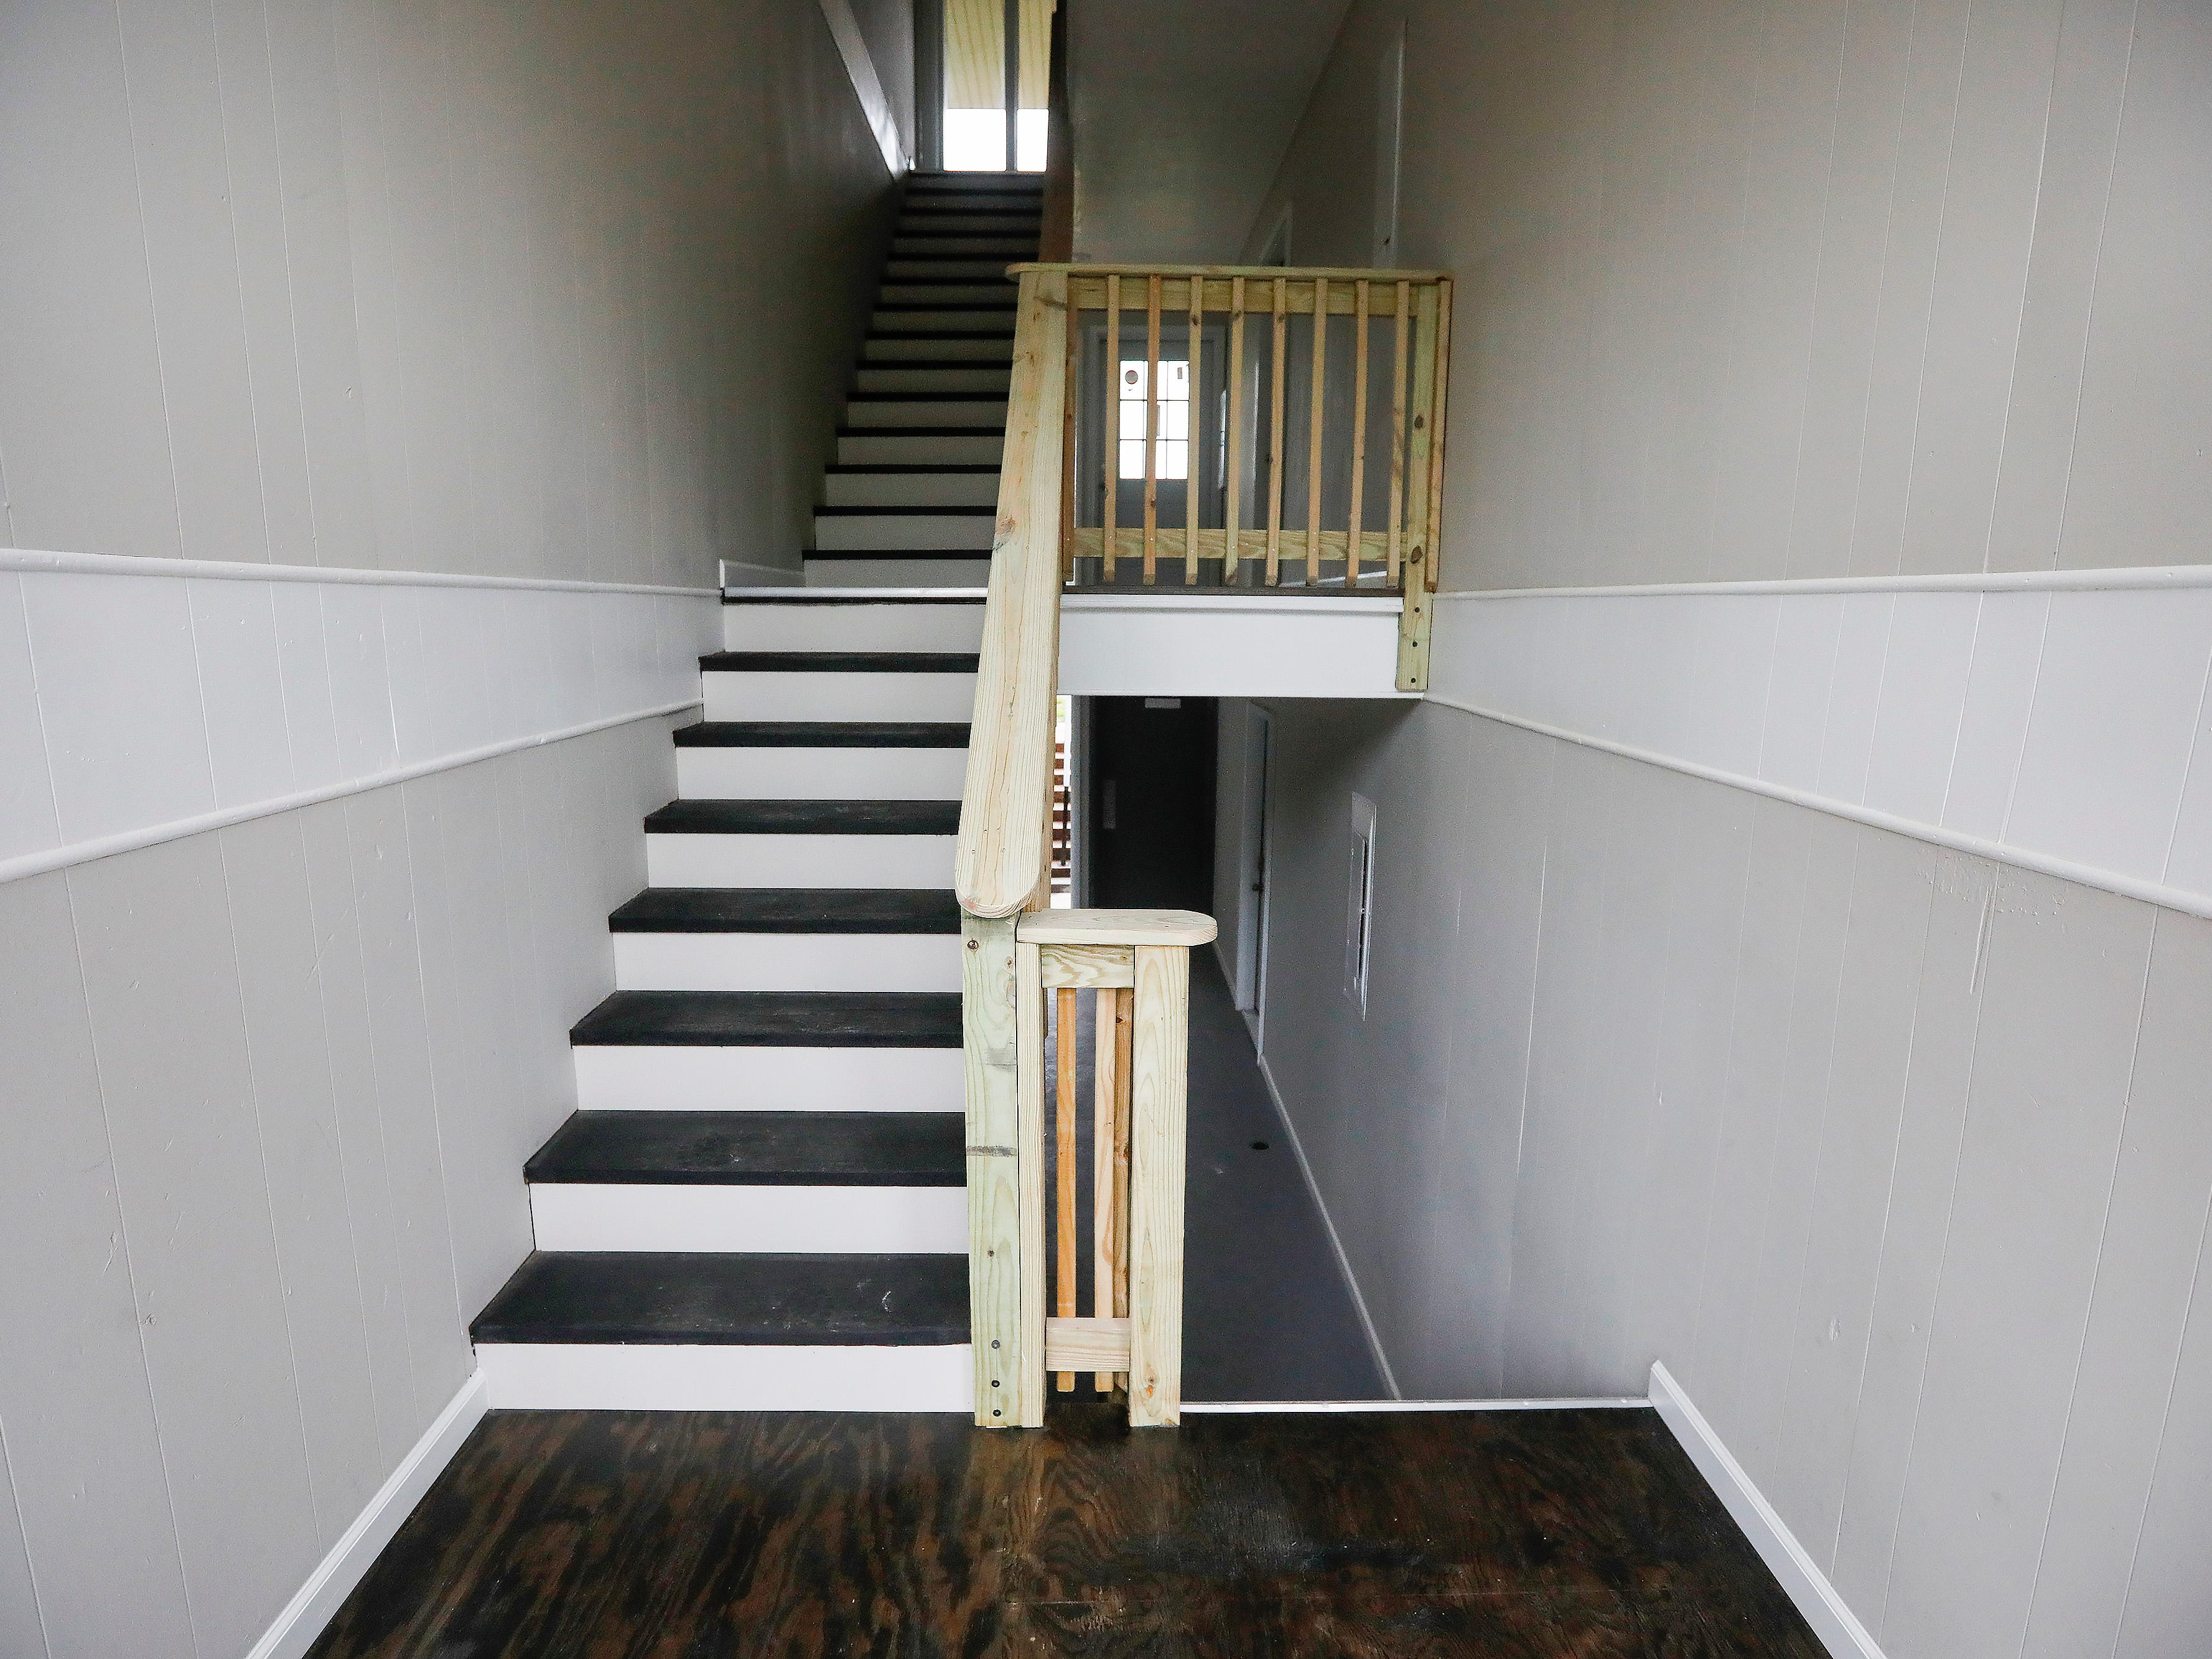 The renovated entryway in an apartment at 2107 E Cherry St. Major renovations of the former Chris Gatley property are being done by the new owner.